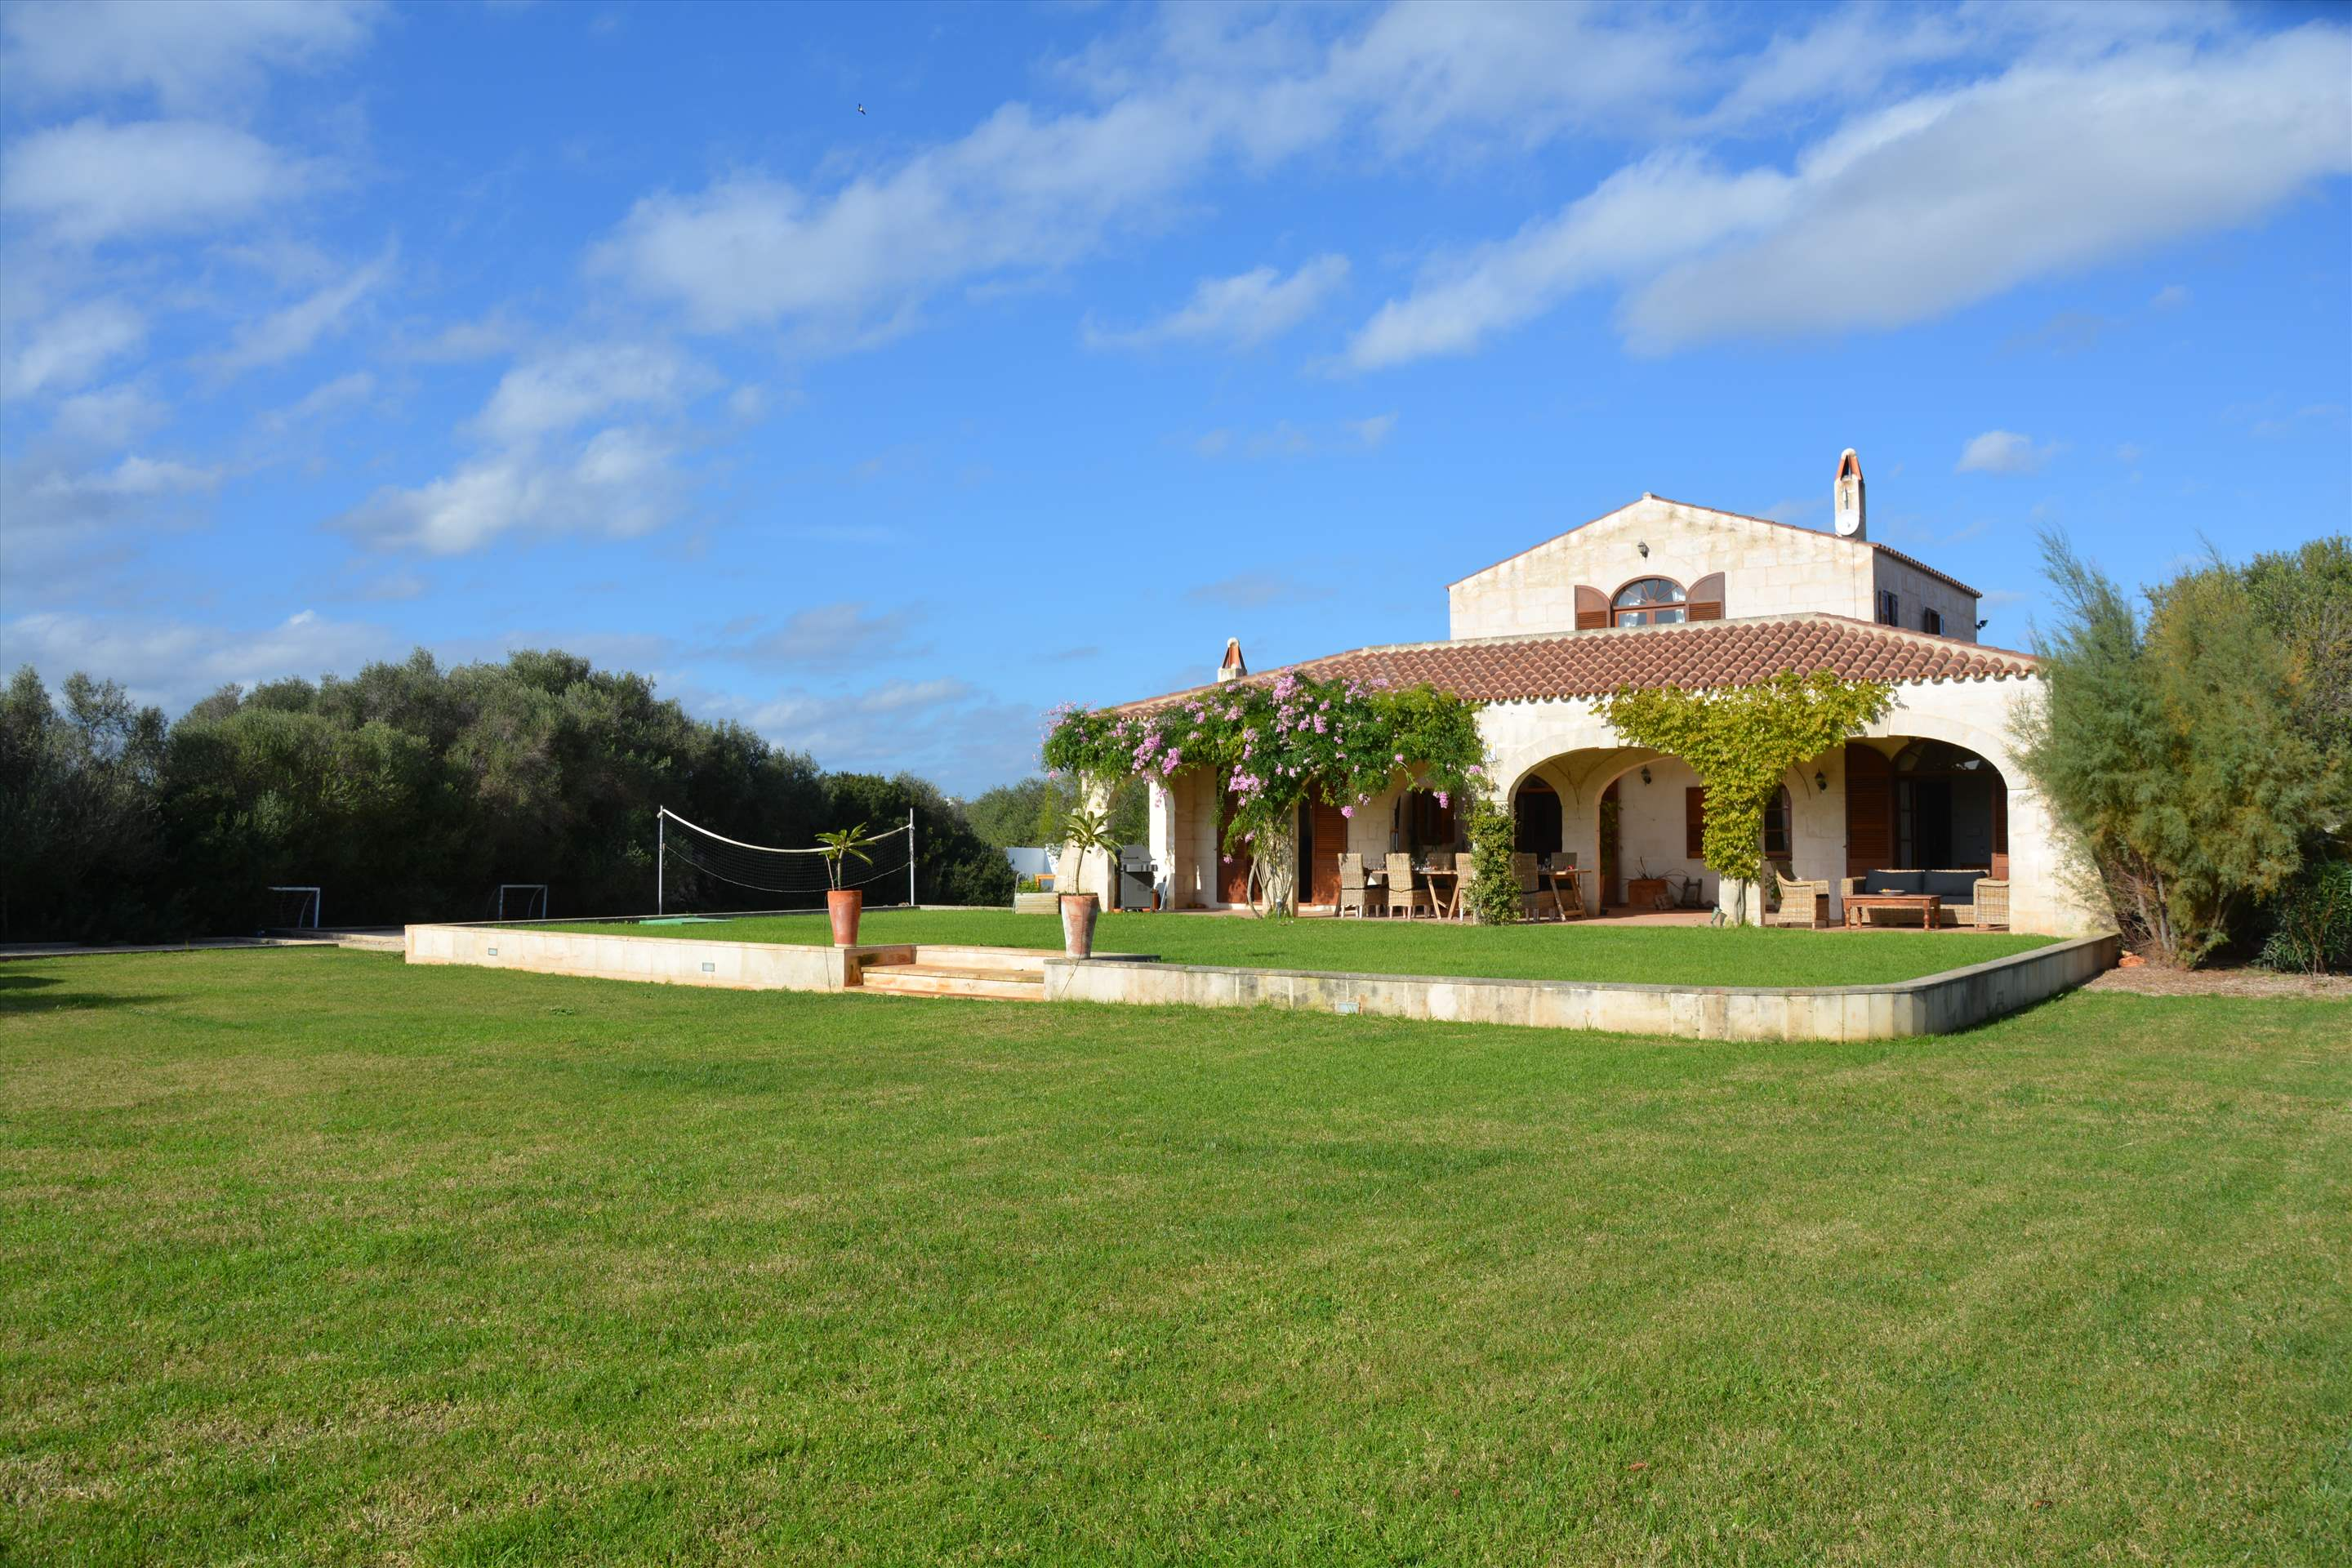 Les Arcs, 5 bedroom villa in Mahon, San Luis & South East, Menorca Photo #22